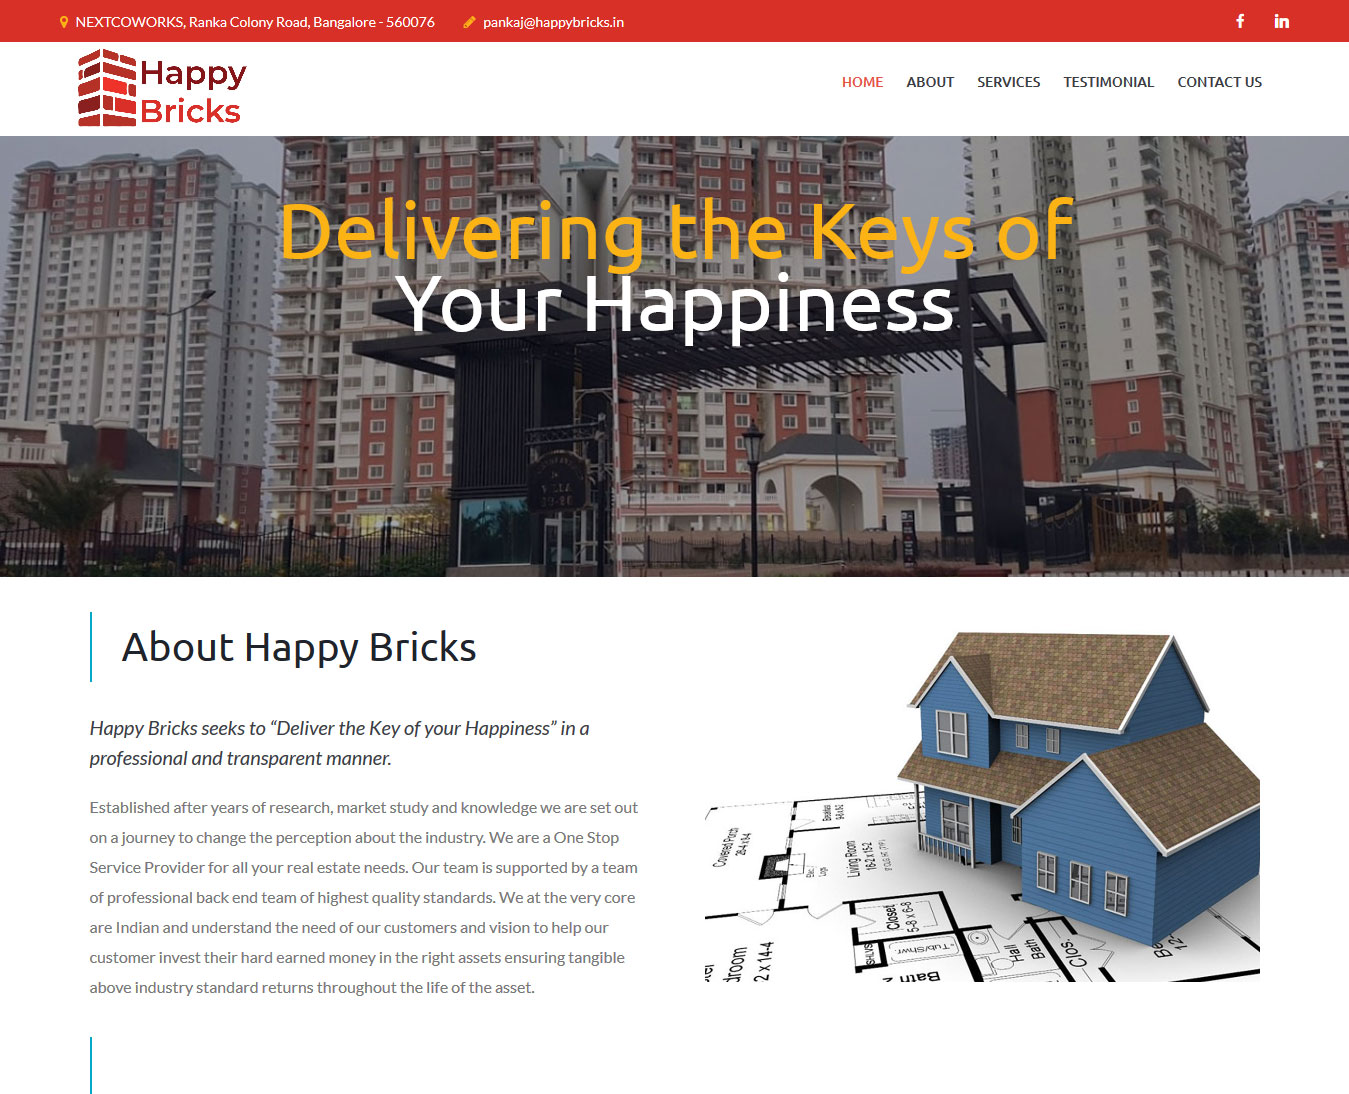 Happy Bricks